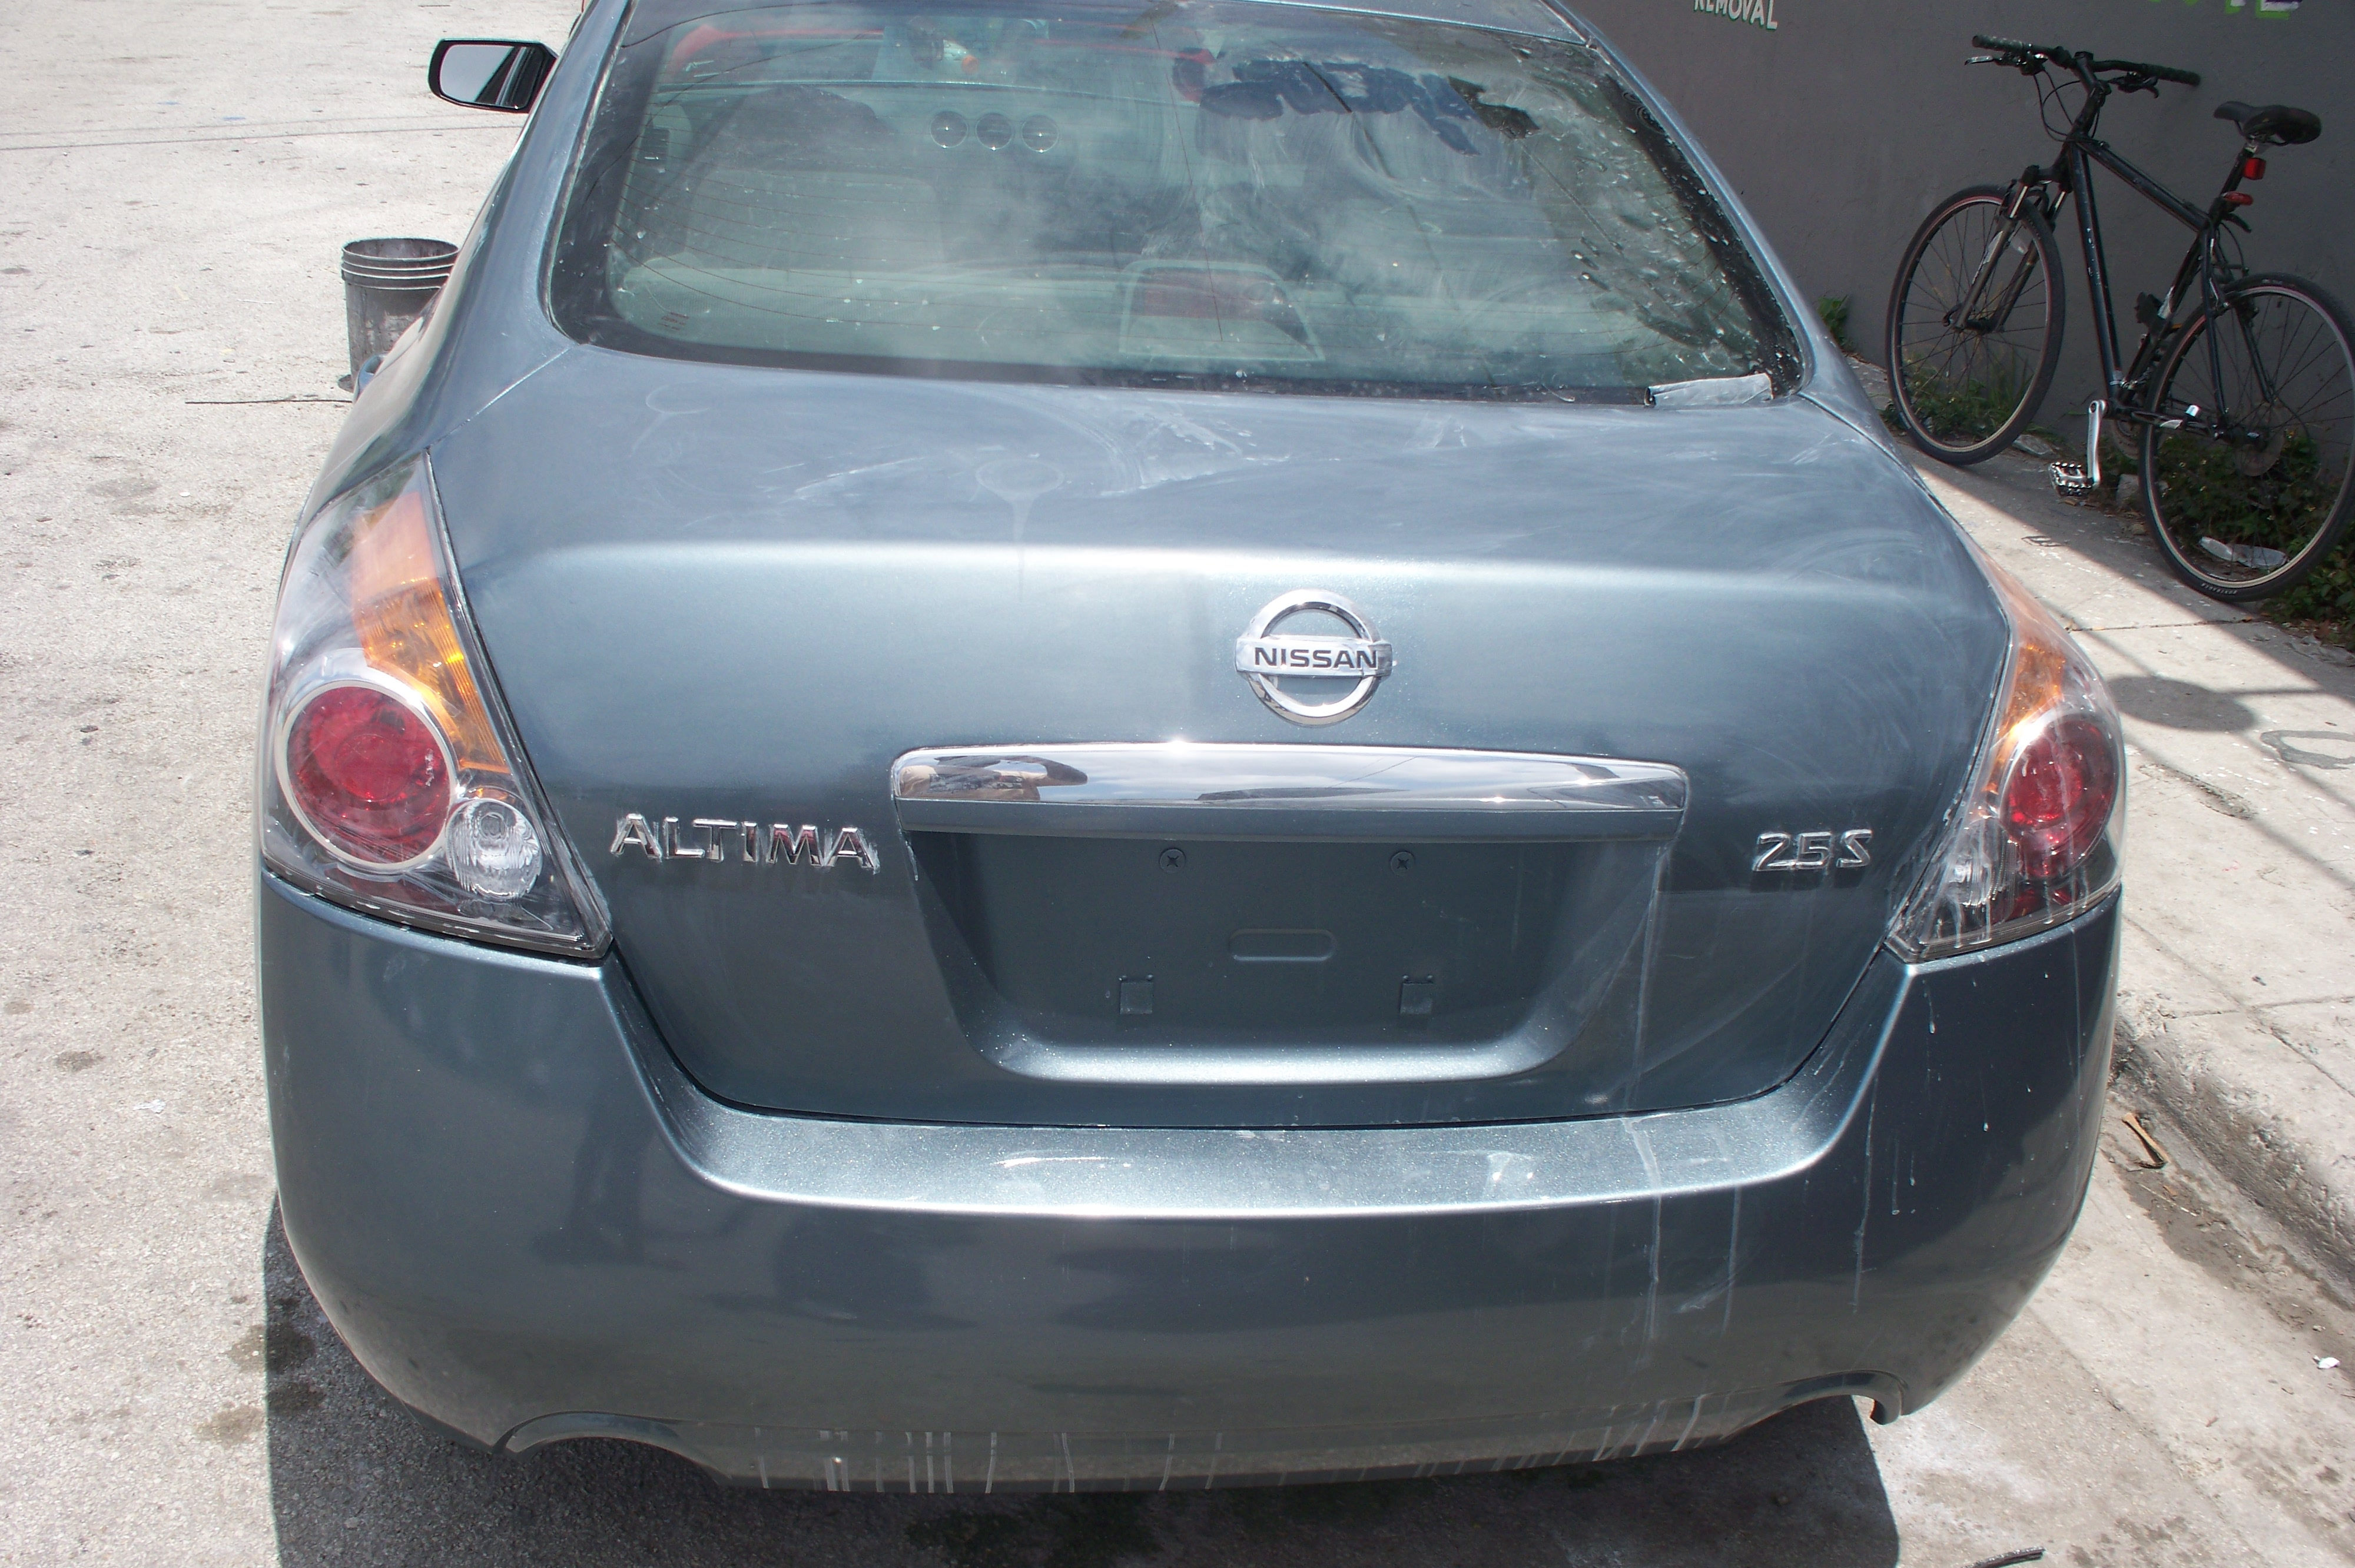 Holla1422 2007 Nissan Altima 14533559